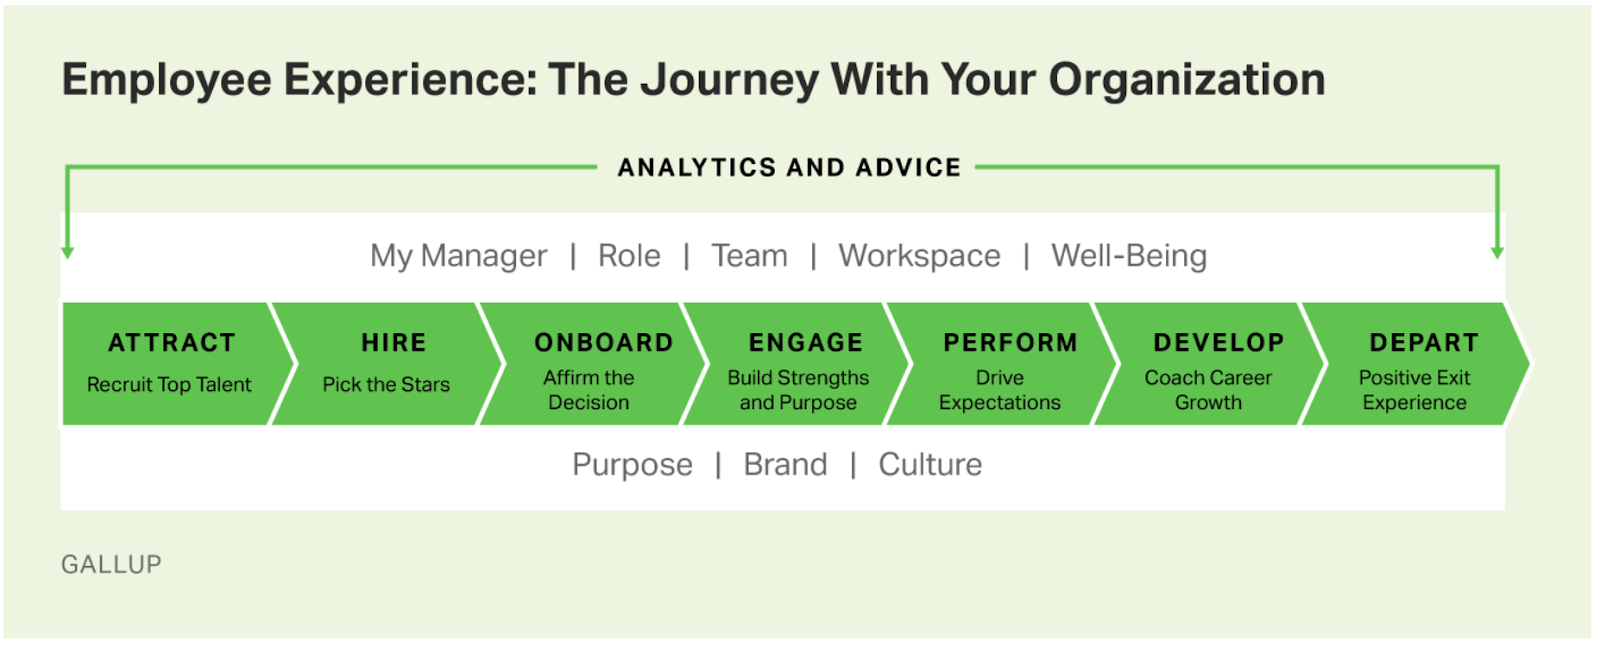 Gallup Employee Experience Journey